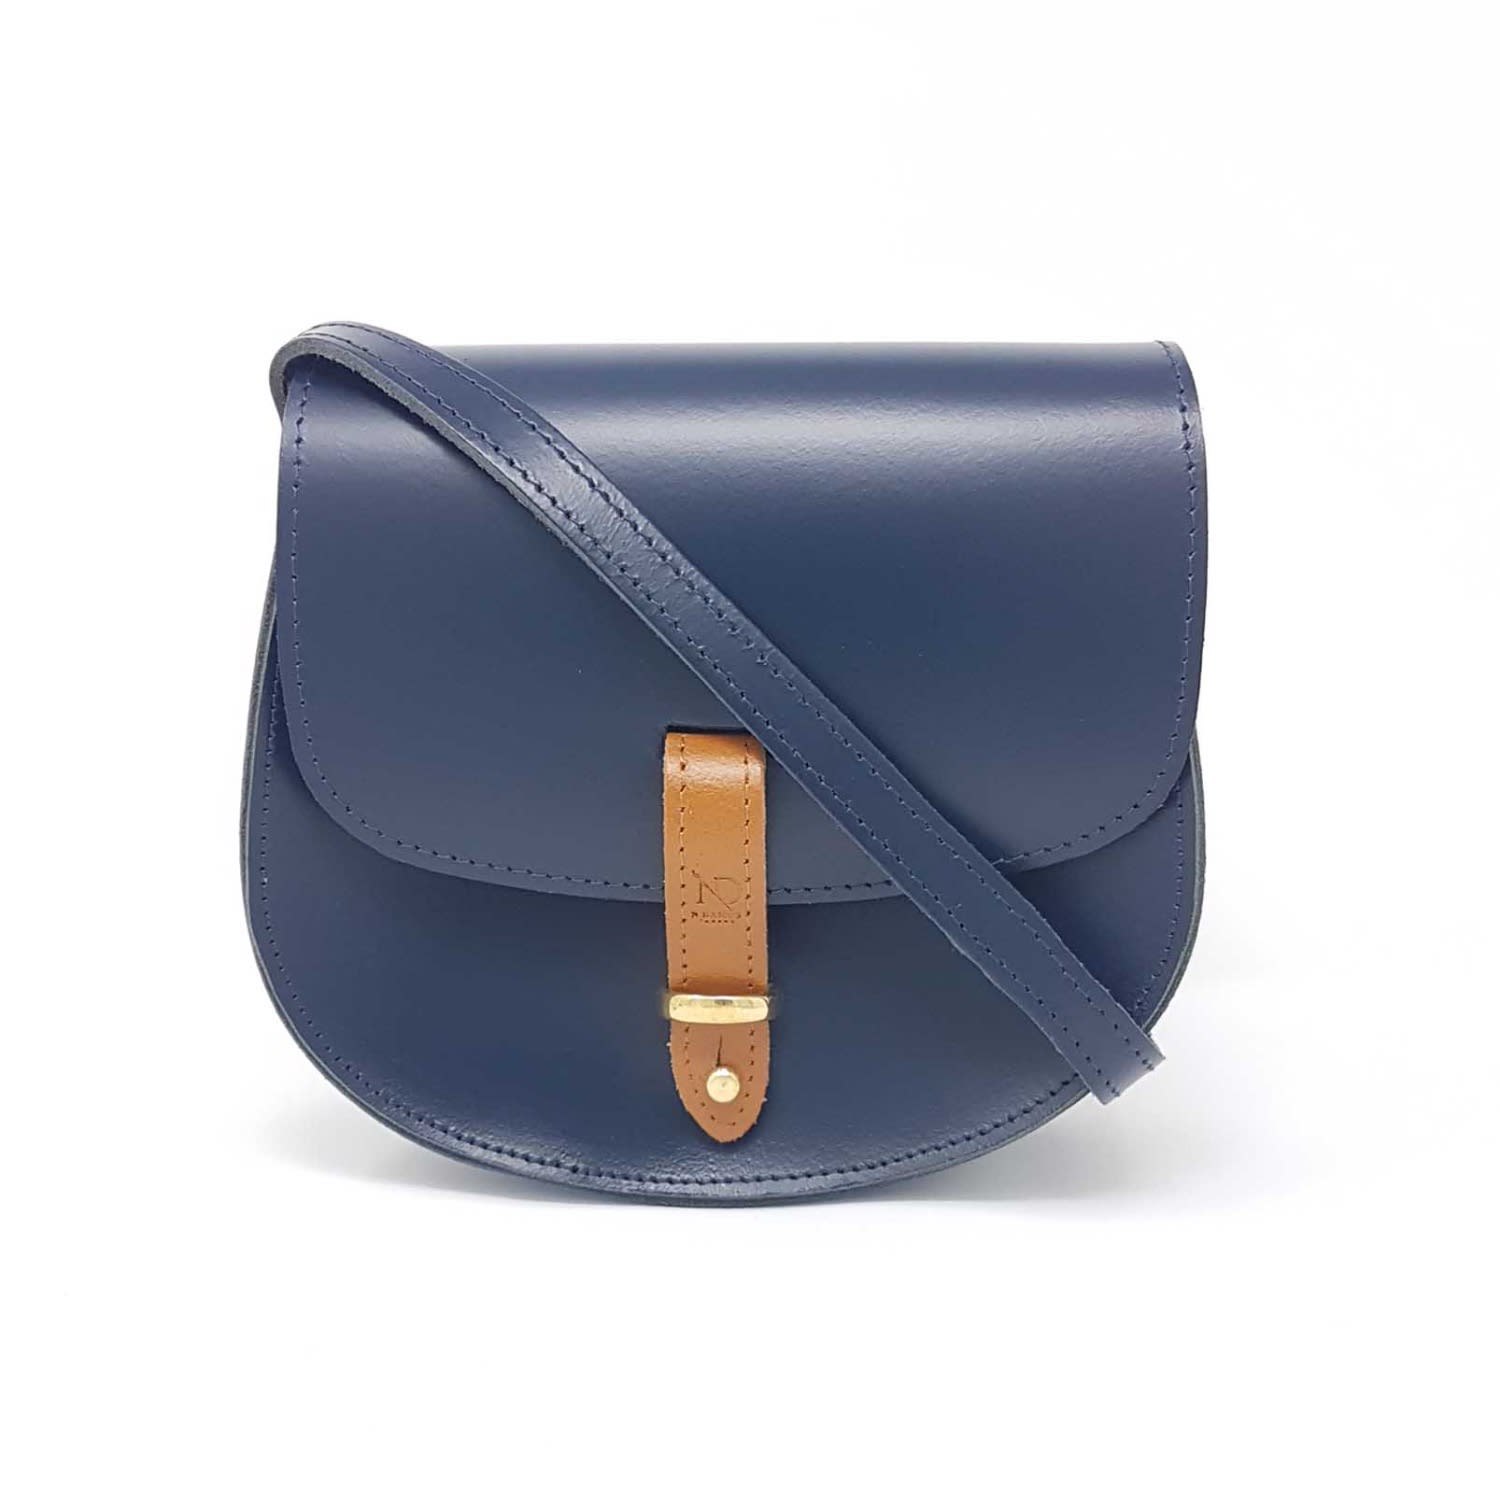 Mini Victoria Navy Leather Crossbody Saddle Bag image 5f0617a28ee93